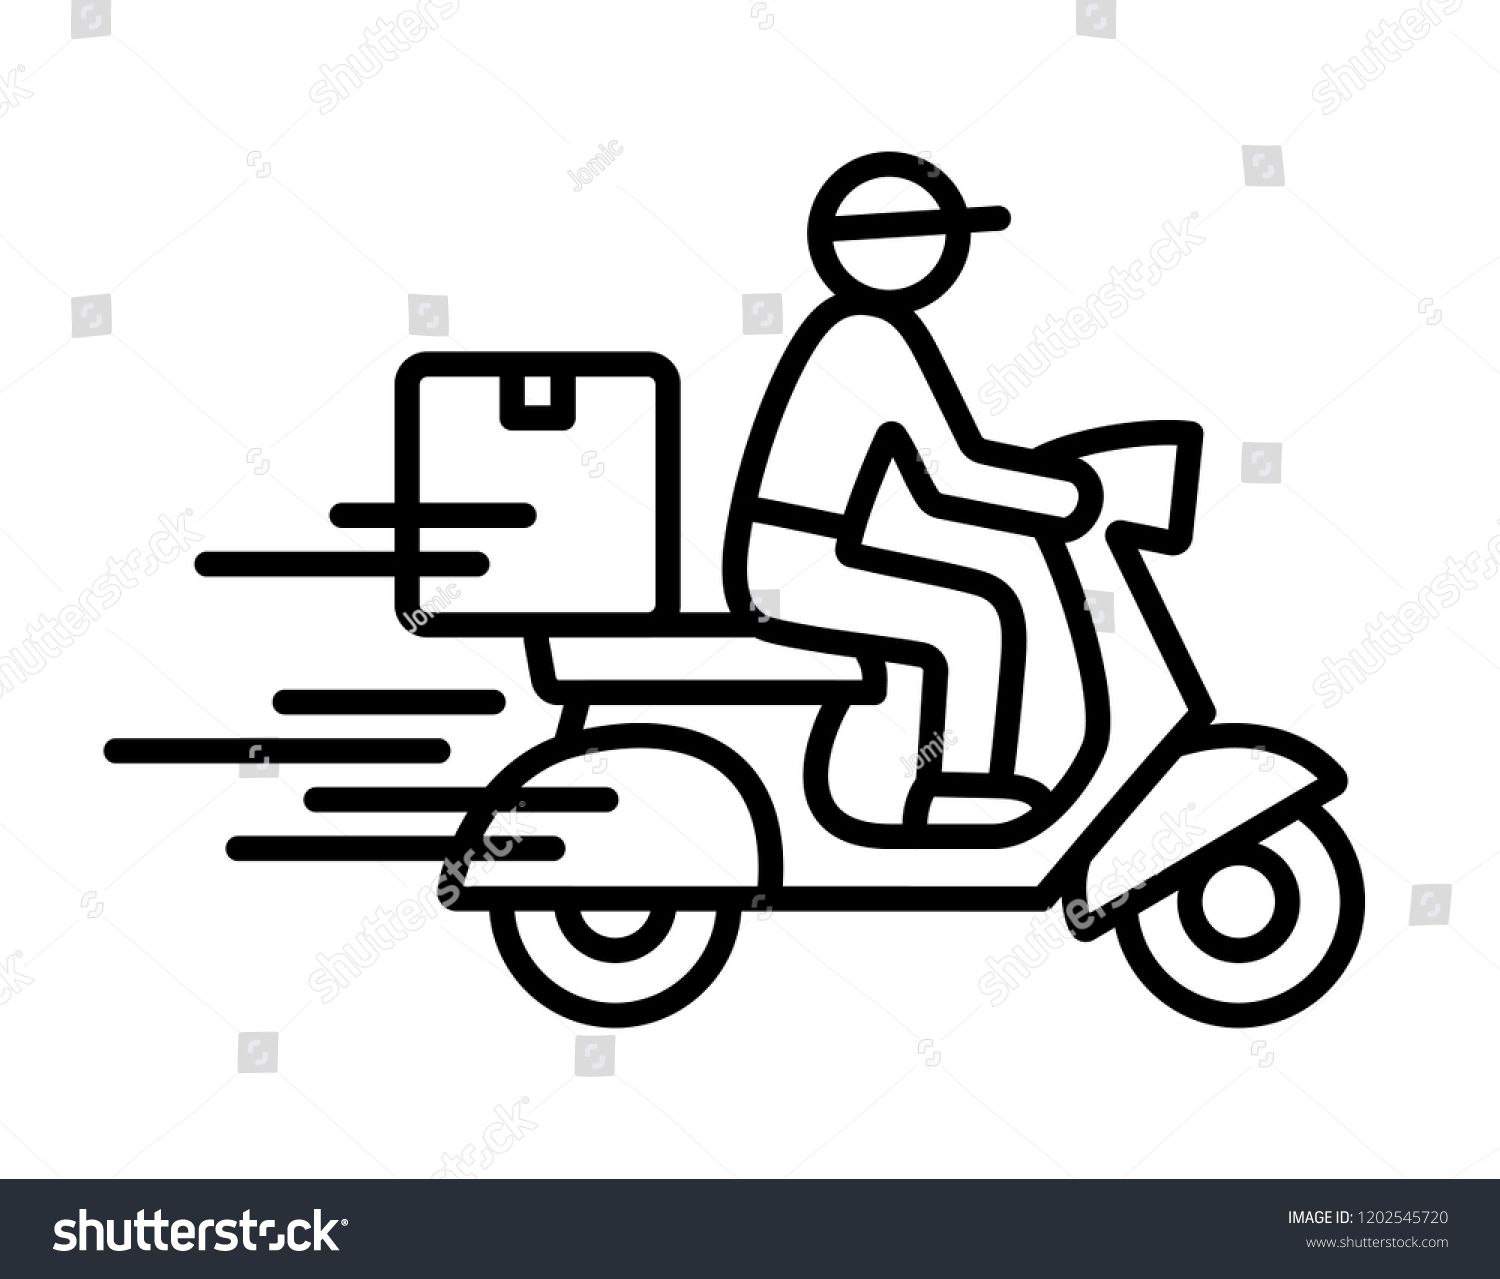 Shipping fast delivery man ridding motorcycle icon symbol